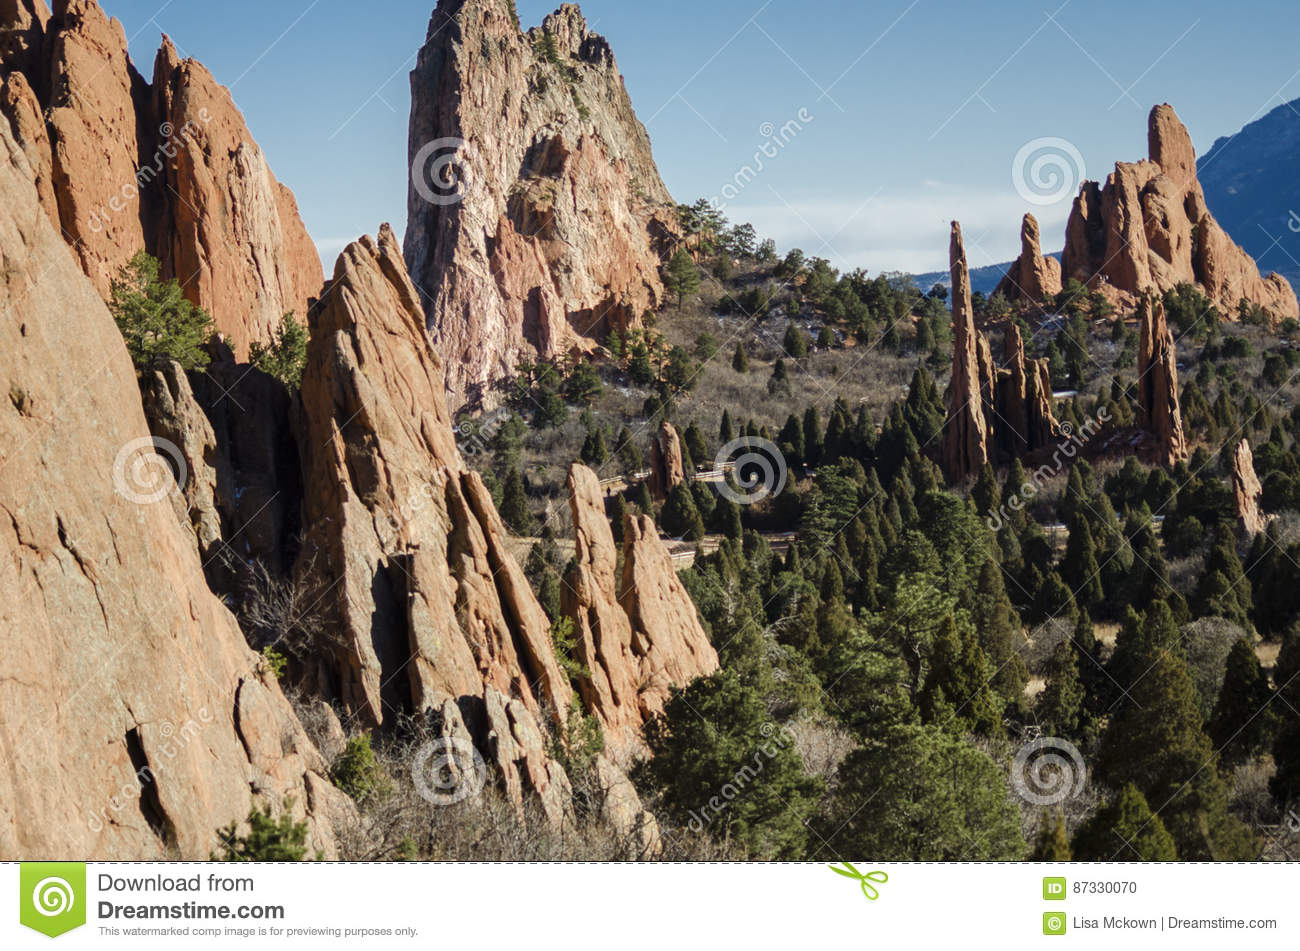 Garden of the Gods Park stock photo. Image of cliff, trail - 87330070